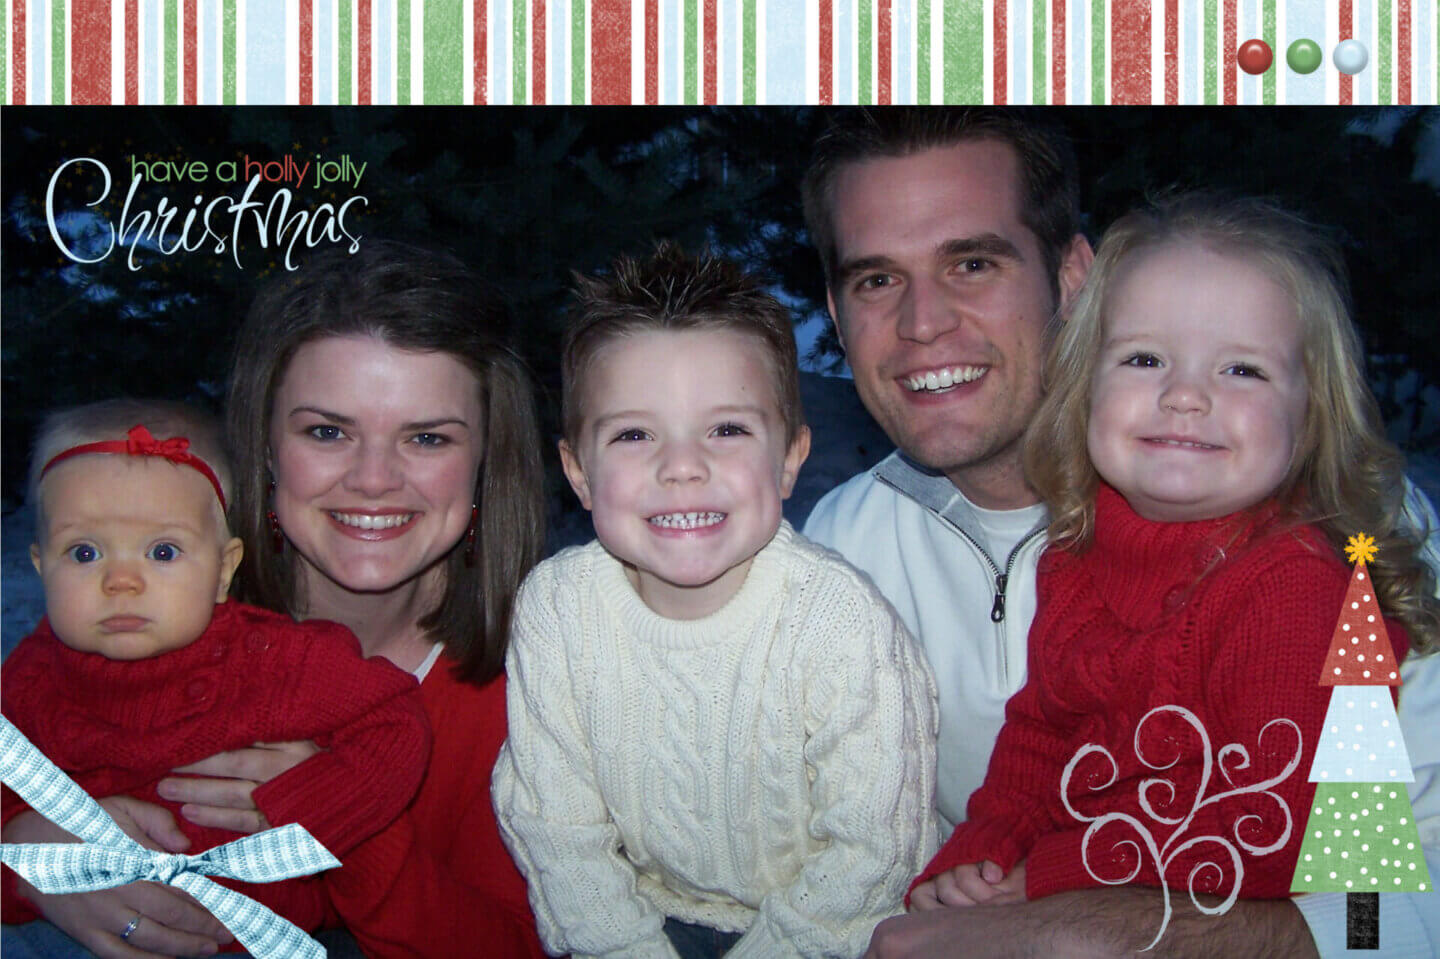 2009 Plowman Family Christmas Card